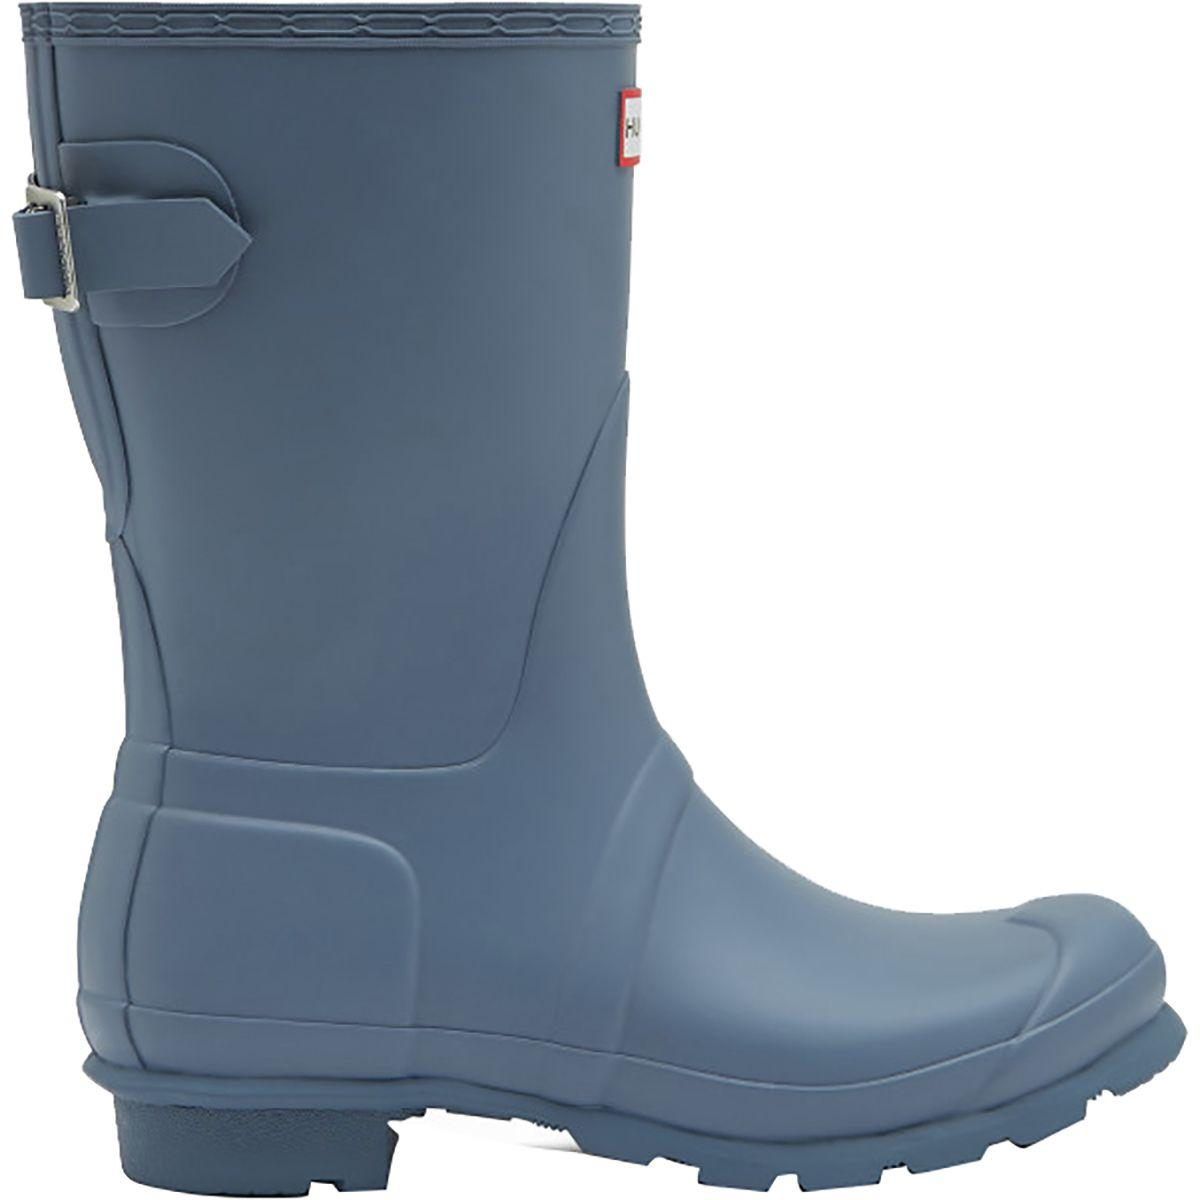 4bb617d8c80 Lyst - HUNTER Original Back Adjustable Short Rain Boot in Blue